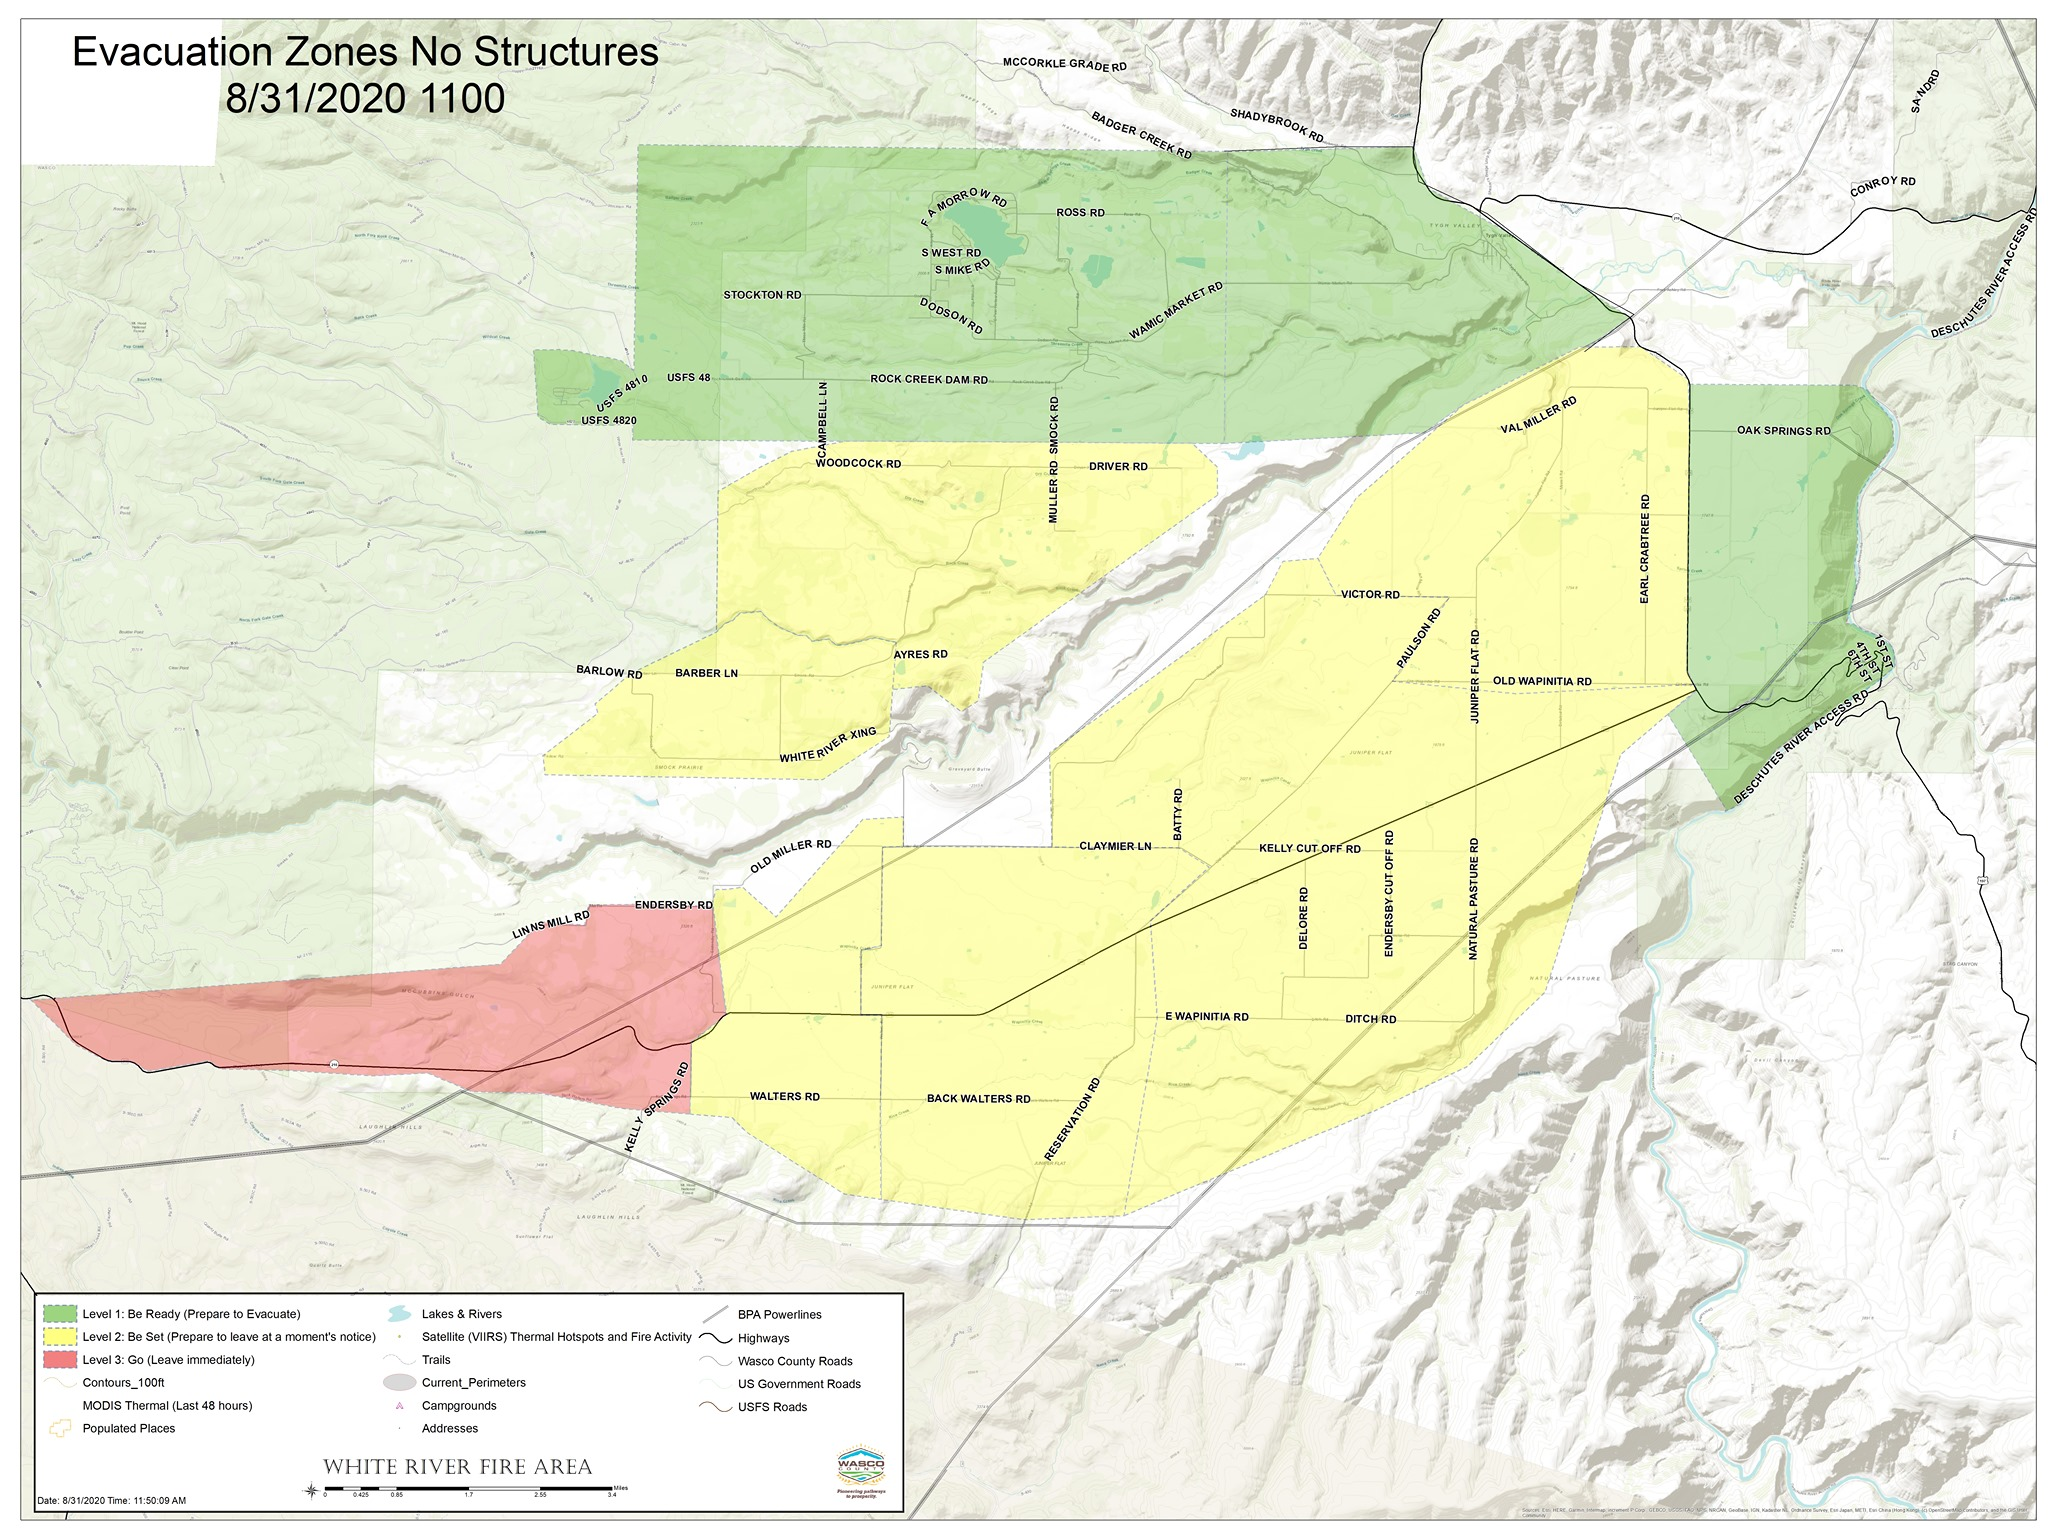 Evacuation Zones 8.31.2020.jpg